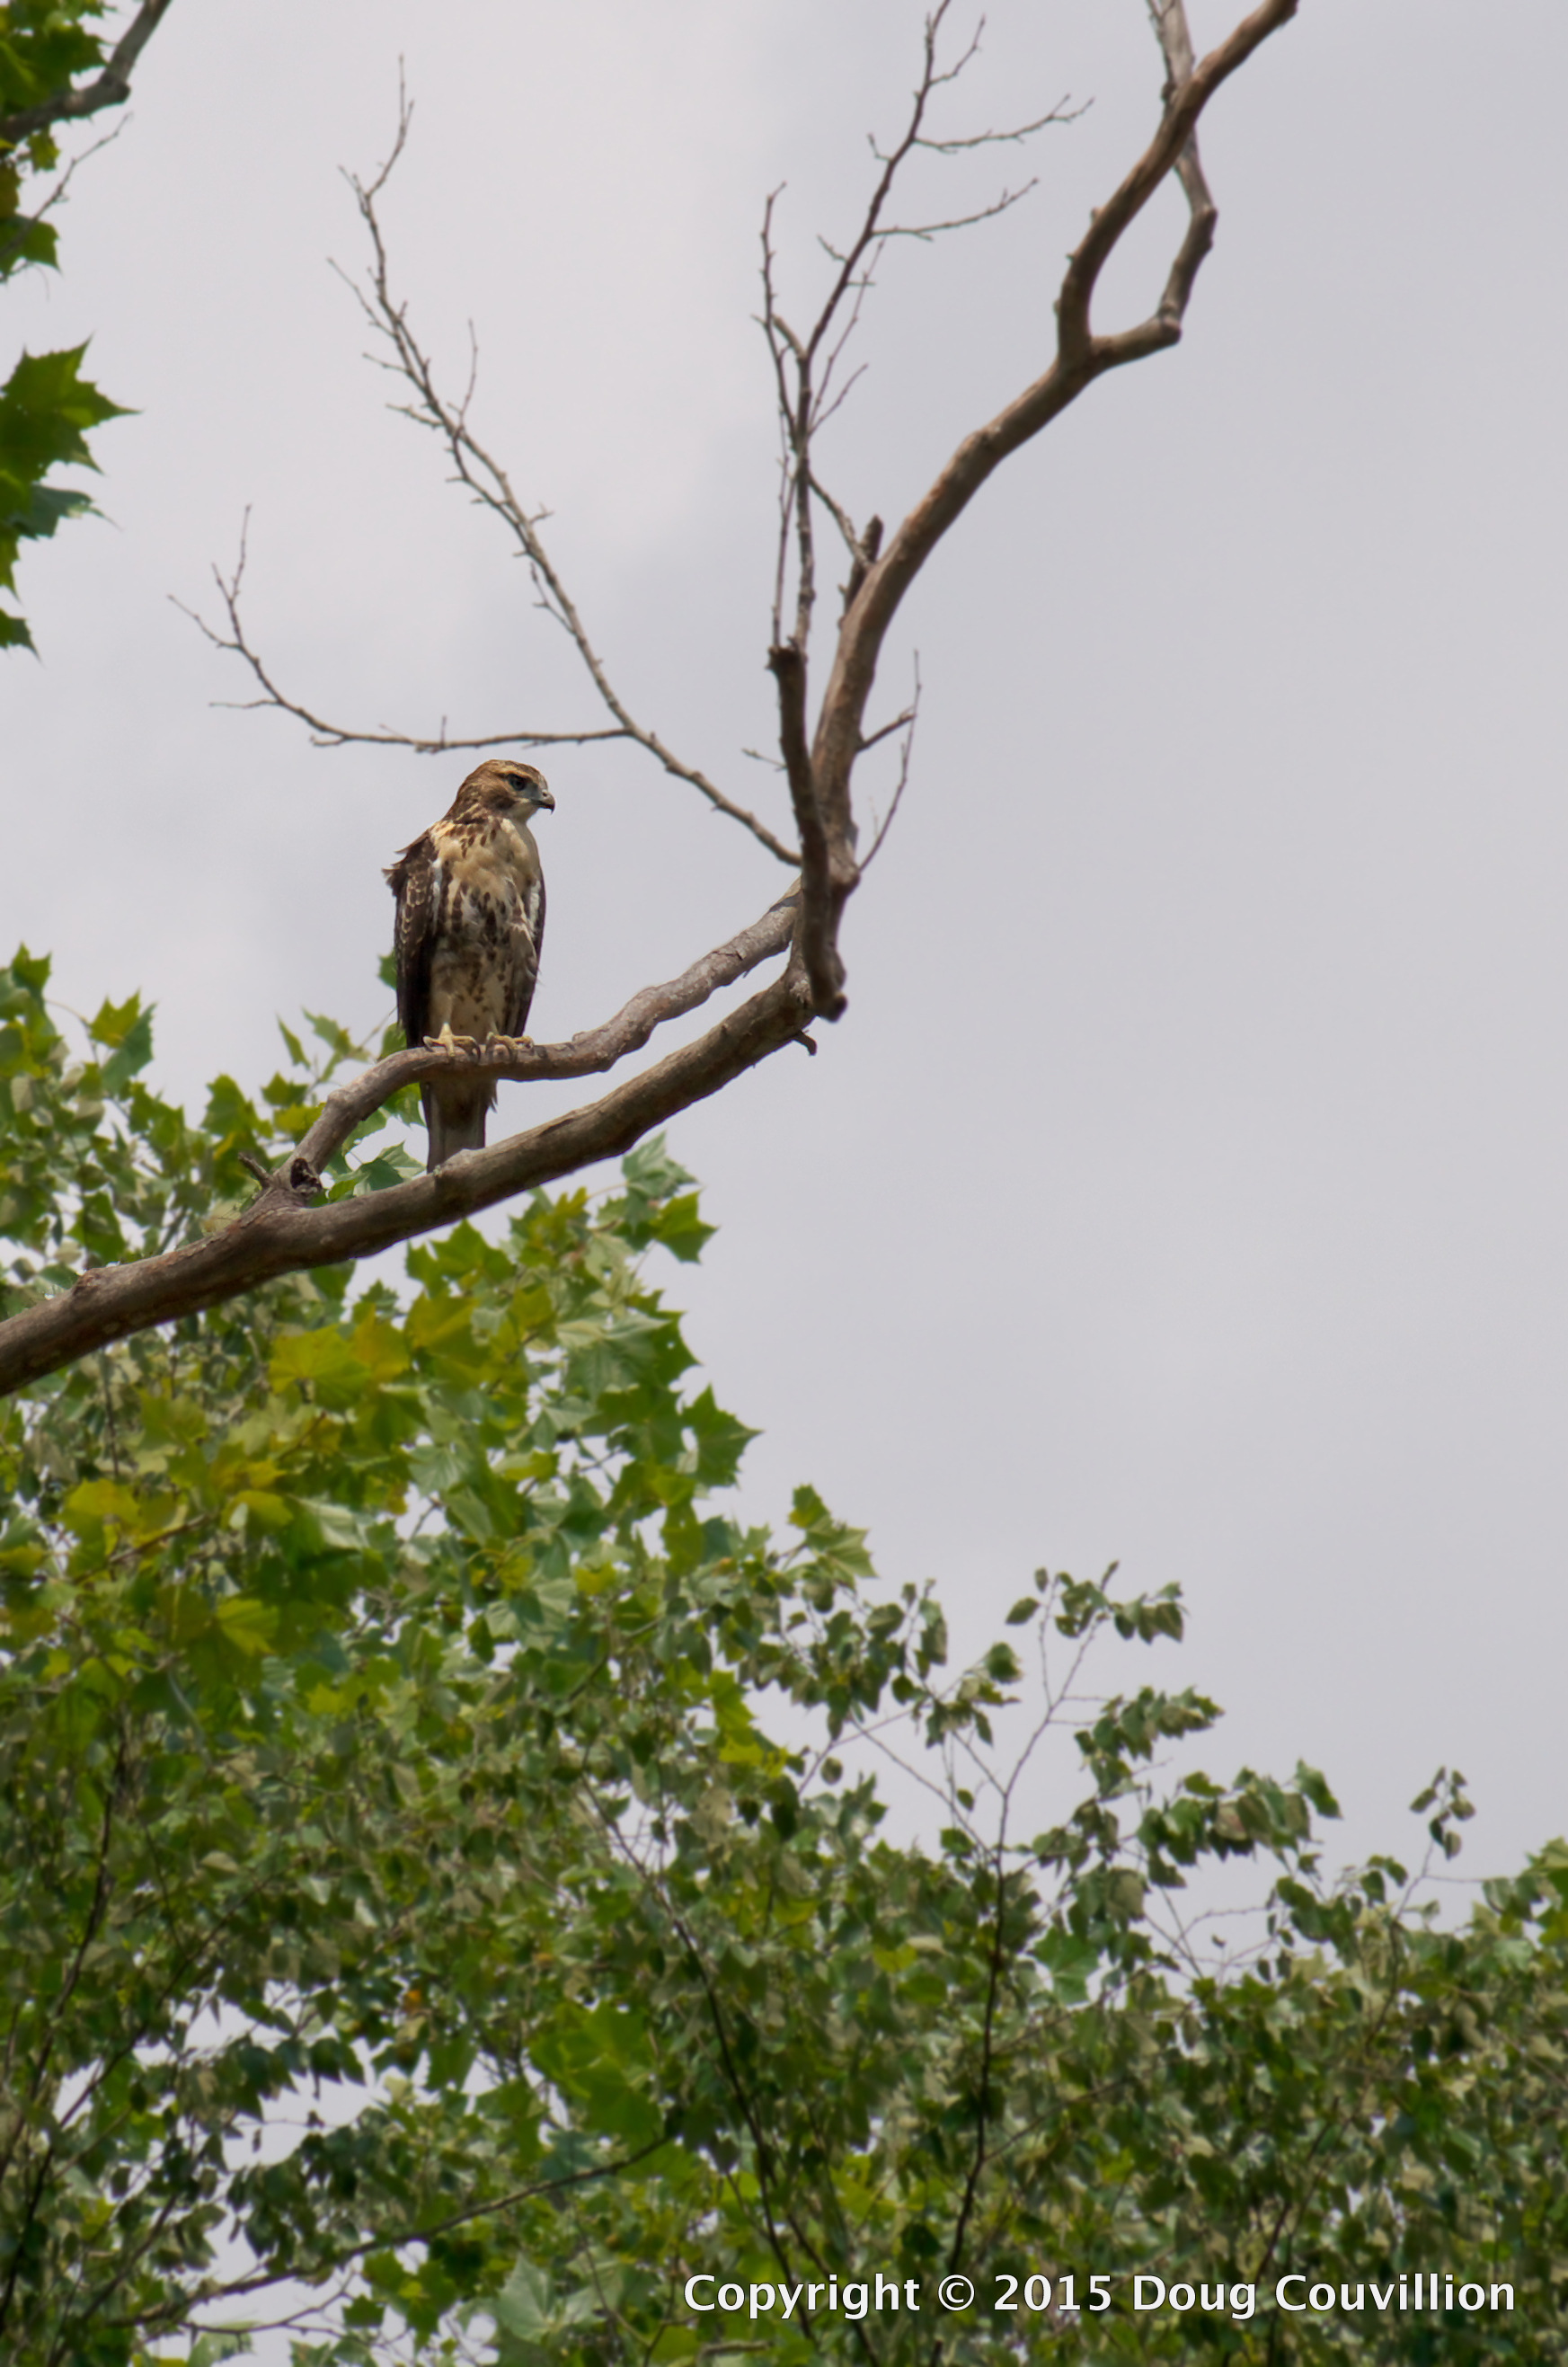 photograph of a young hawk perched in a tree on the Rappahannock River in Virginia